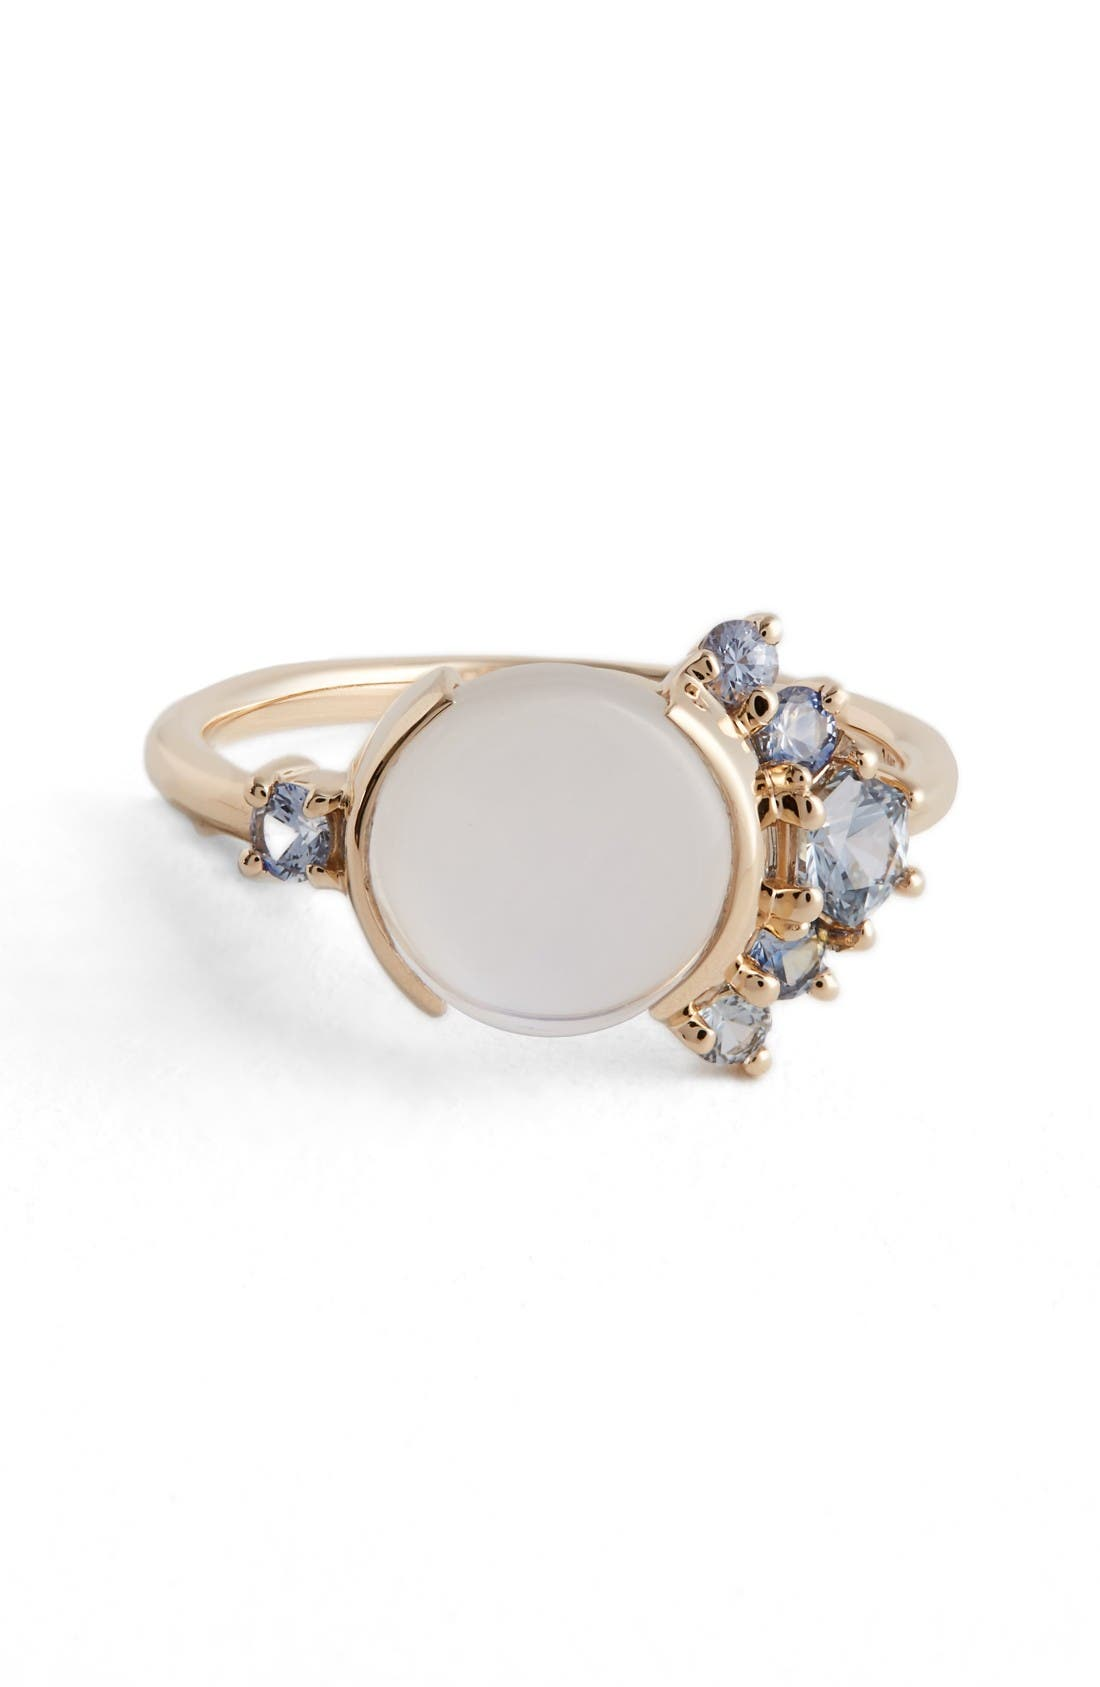 Moonstone & Sapphire Ring,                             Main thumbnail 1, color,                             Yellow White